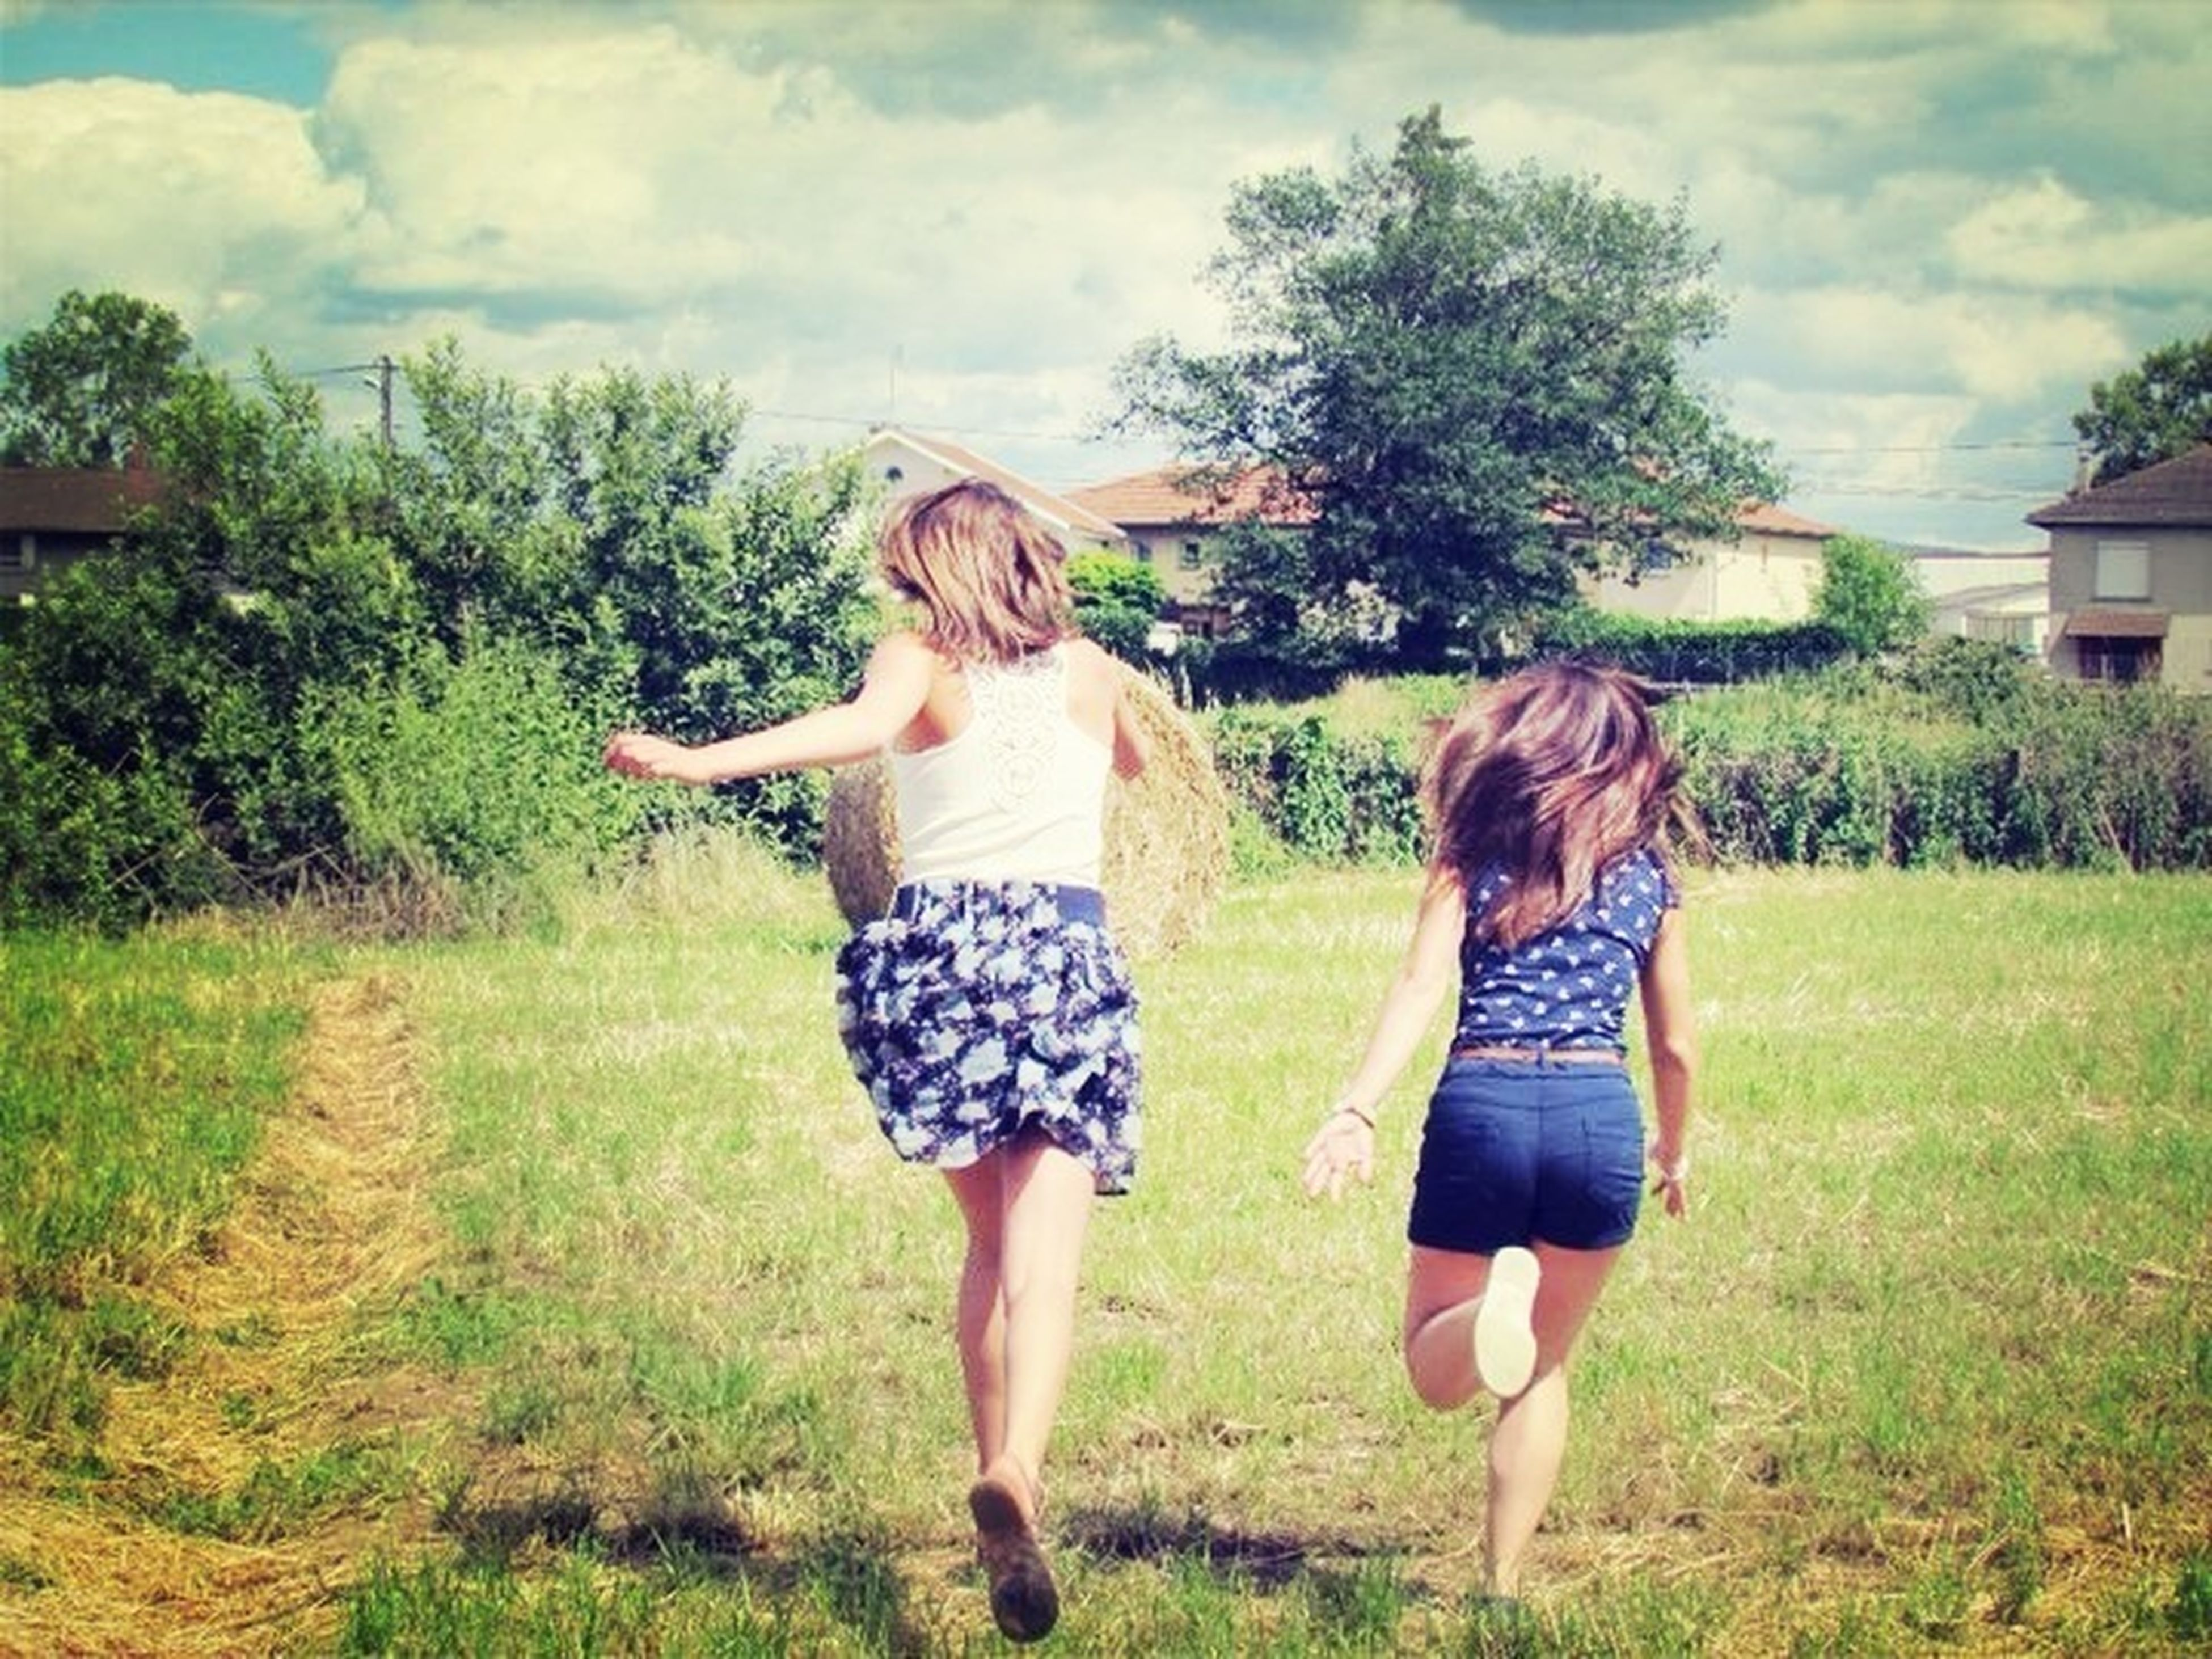 grass, lifestyles, casual clothing, full length, leisure activity, sky, person, young adult, standing, tree, field, young women, cloud - sky, childhood, girls, grassy, front view, three quarter length